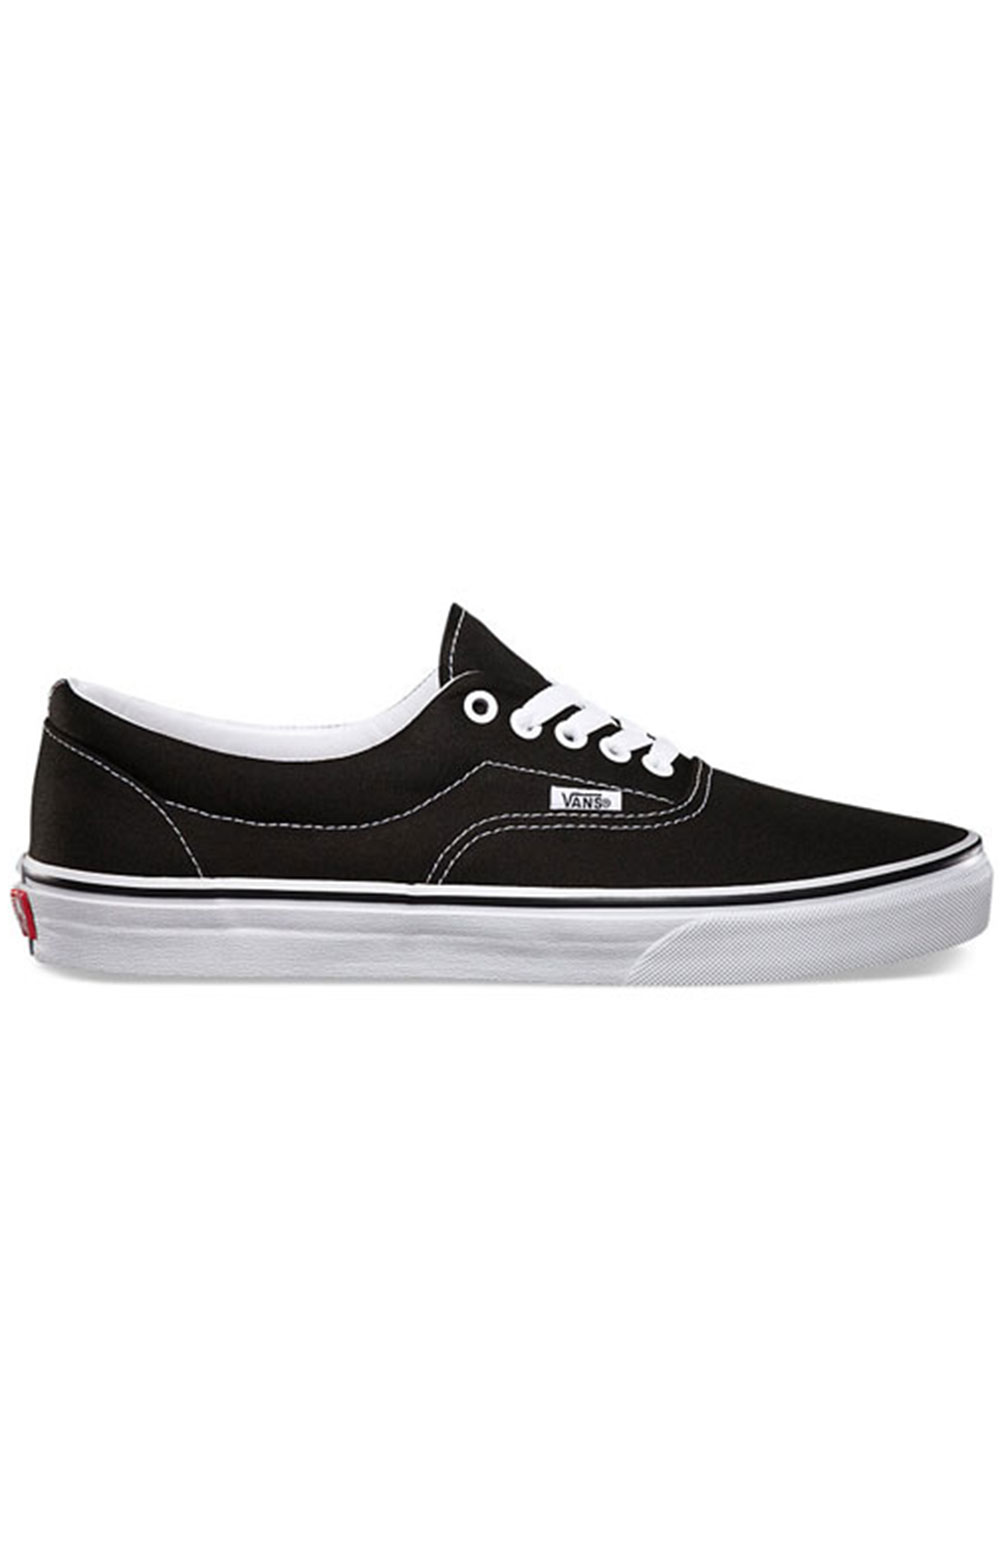 (EWZBLK) Era Shoe - Black